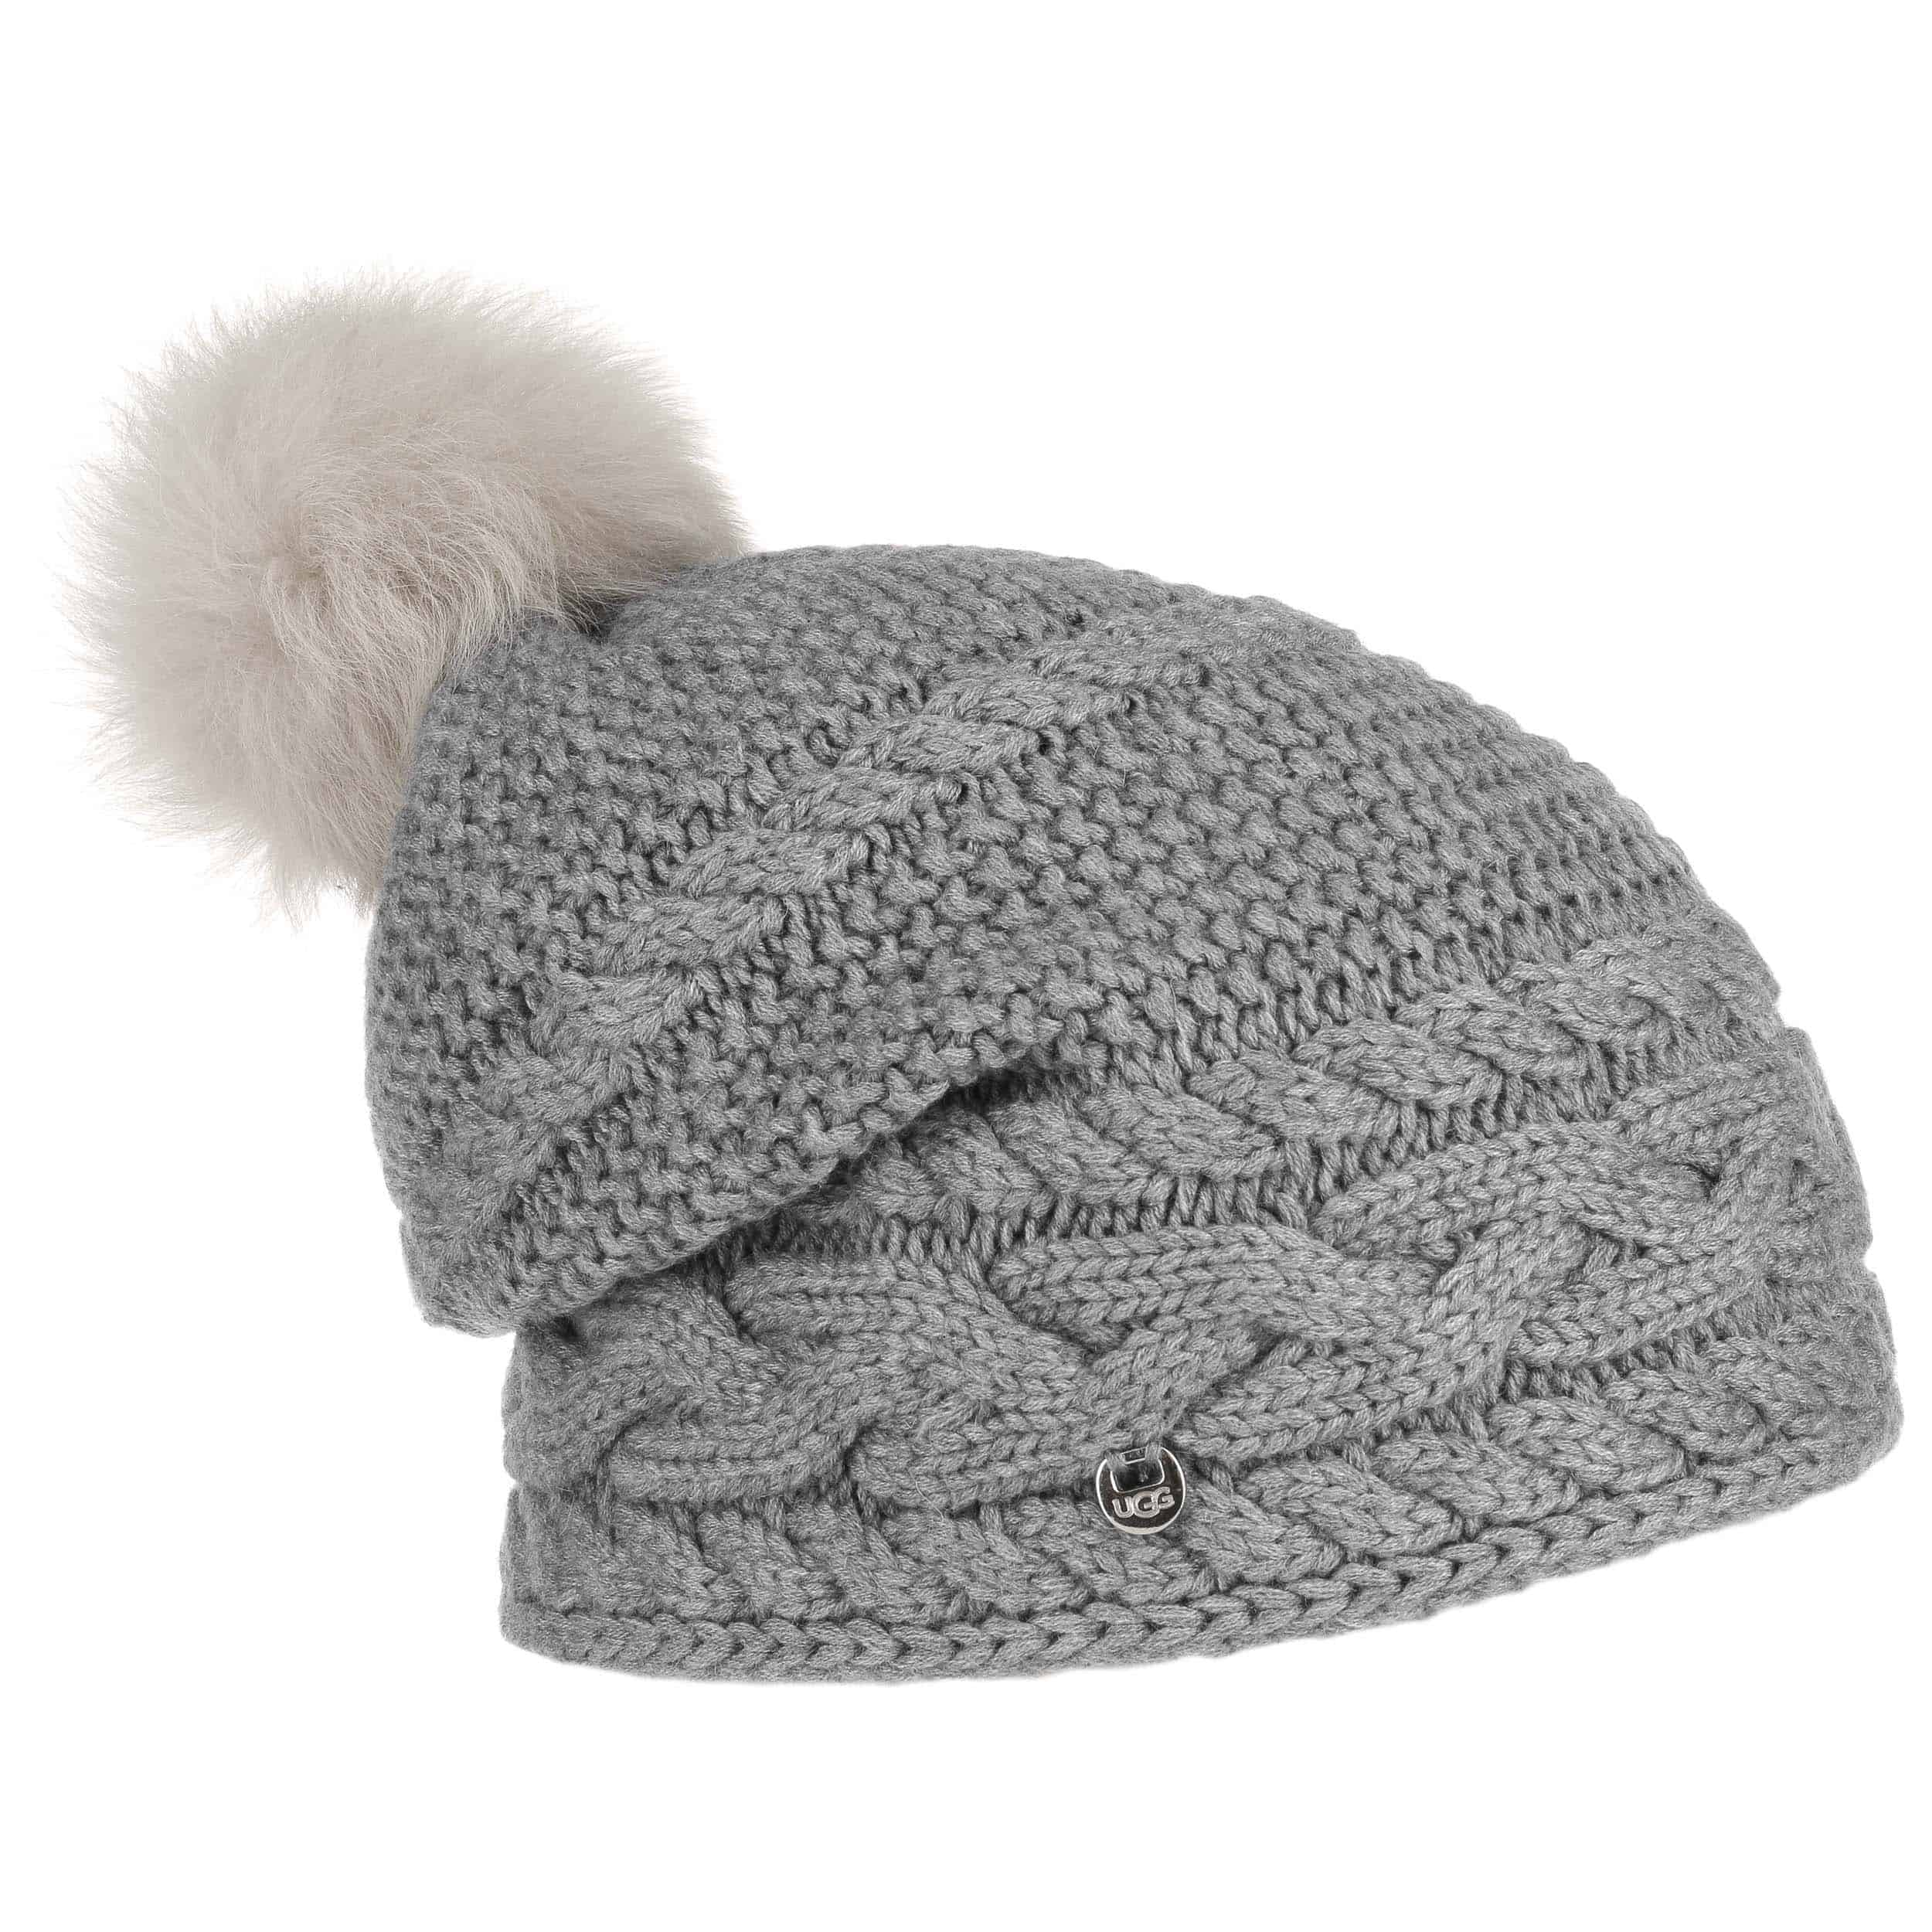 ce1372c98b9 Ugg Knitted Hat - cheap watches mgc-gas.com